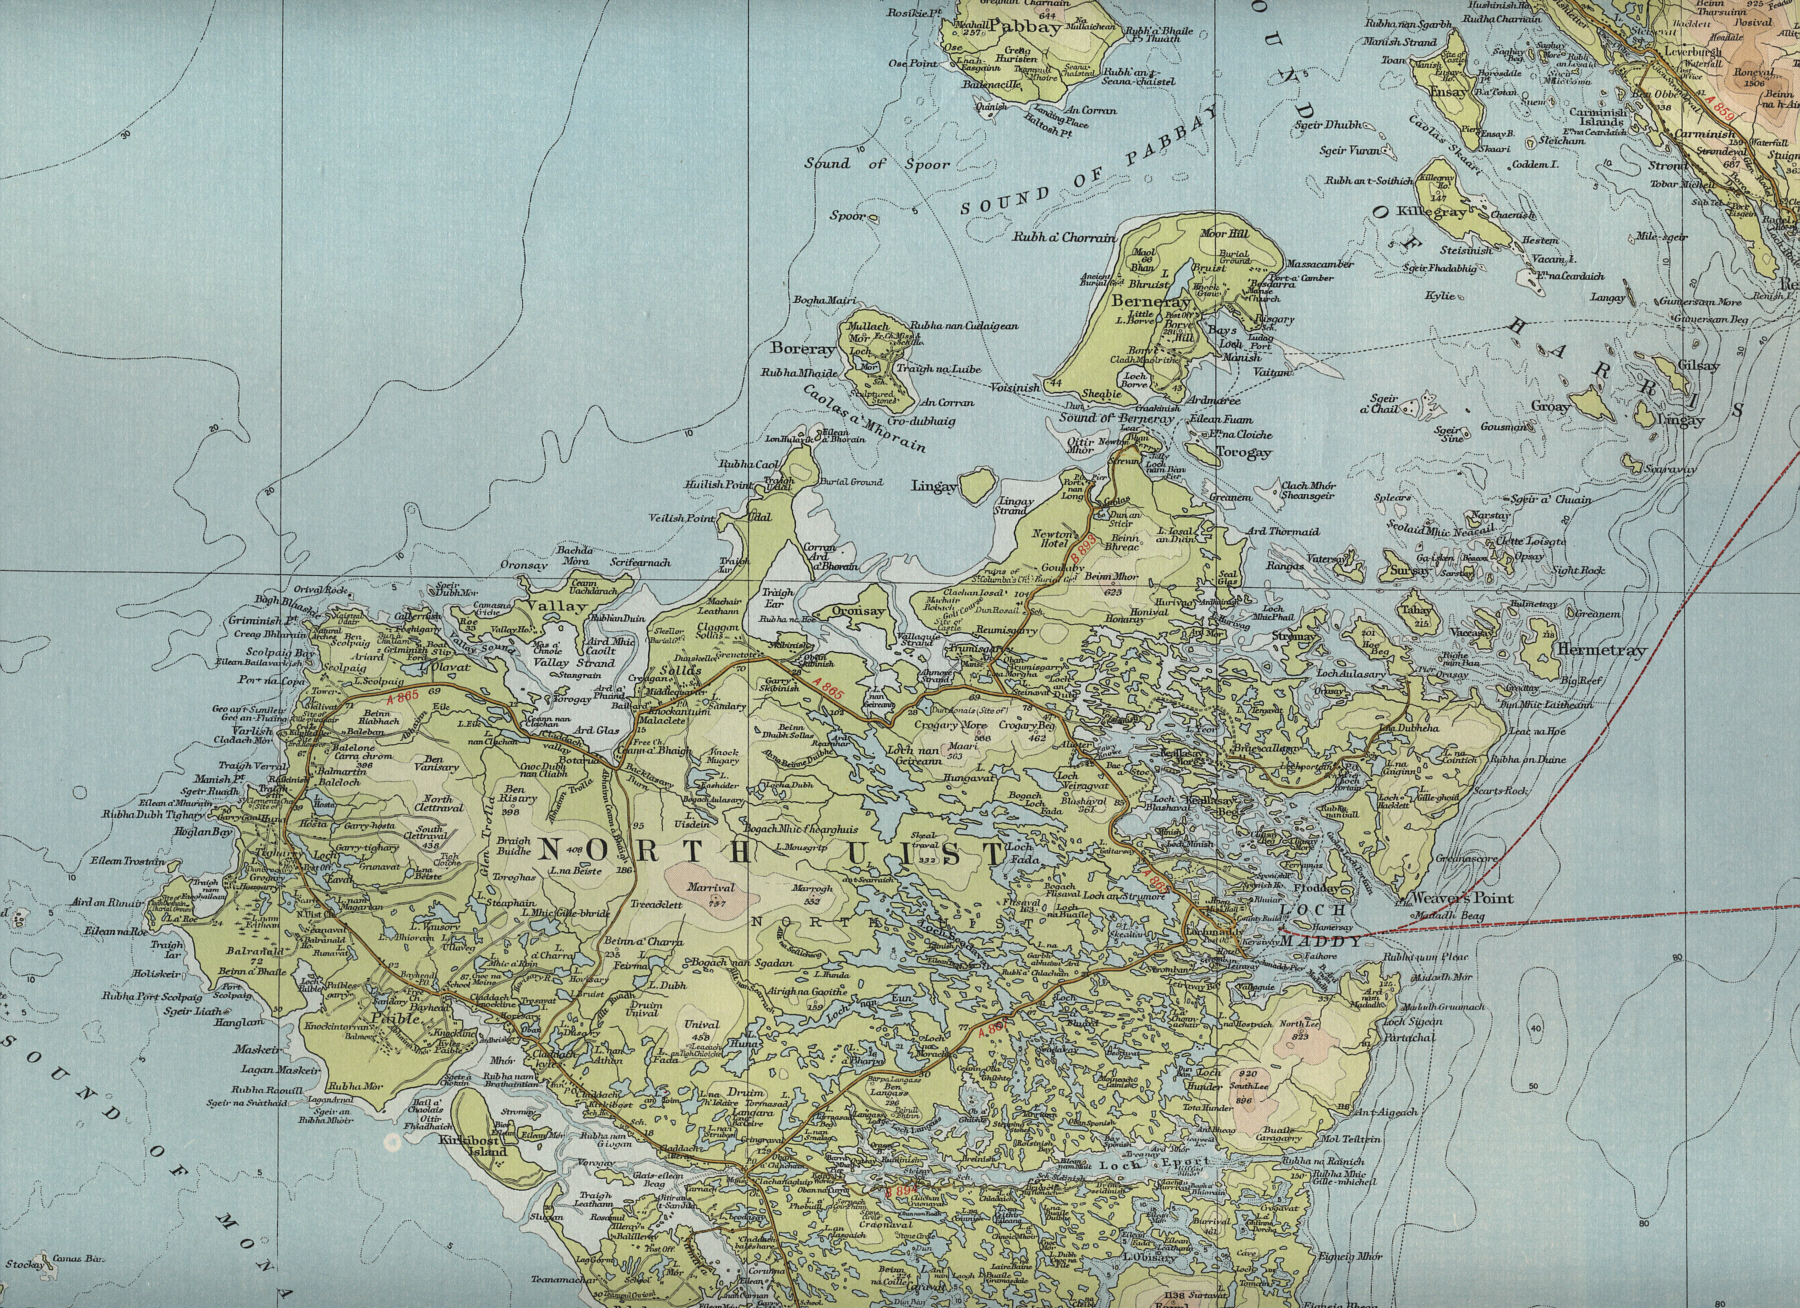 North Uist Map